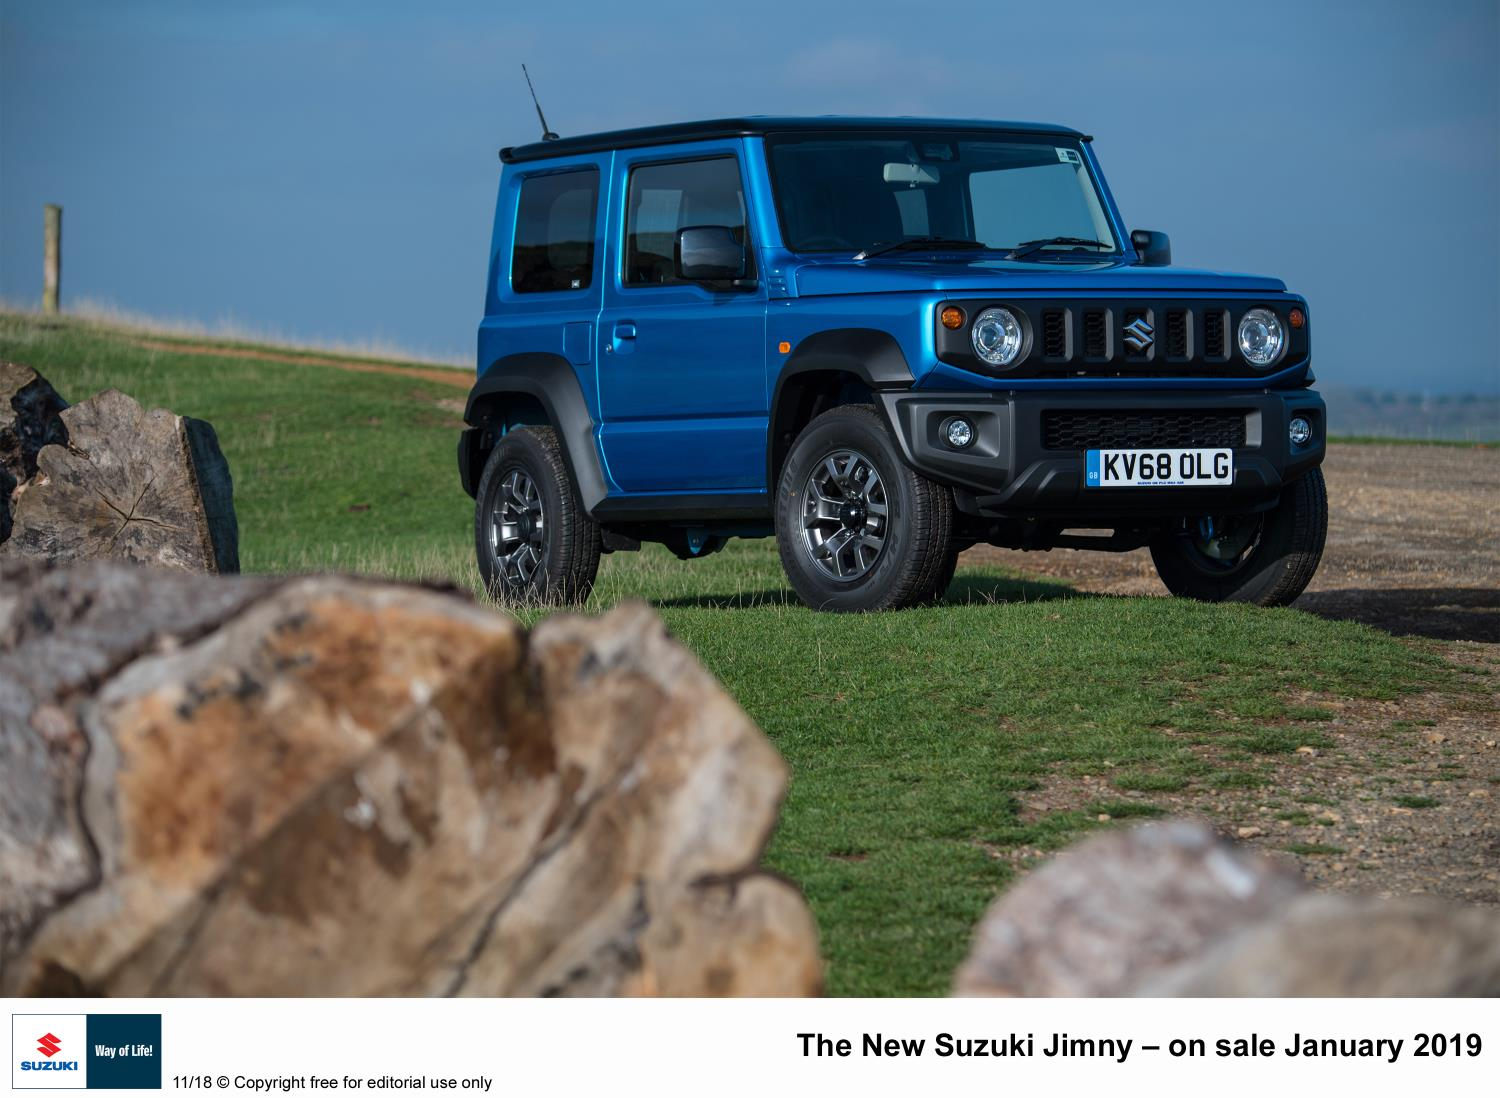 Move over Rudolph - Jimny power beats reindeer power